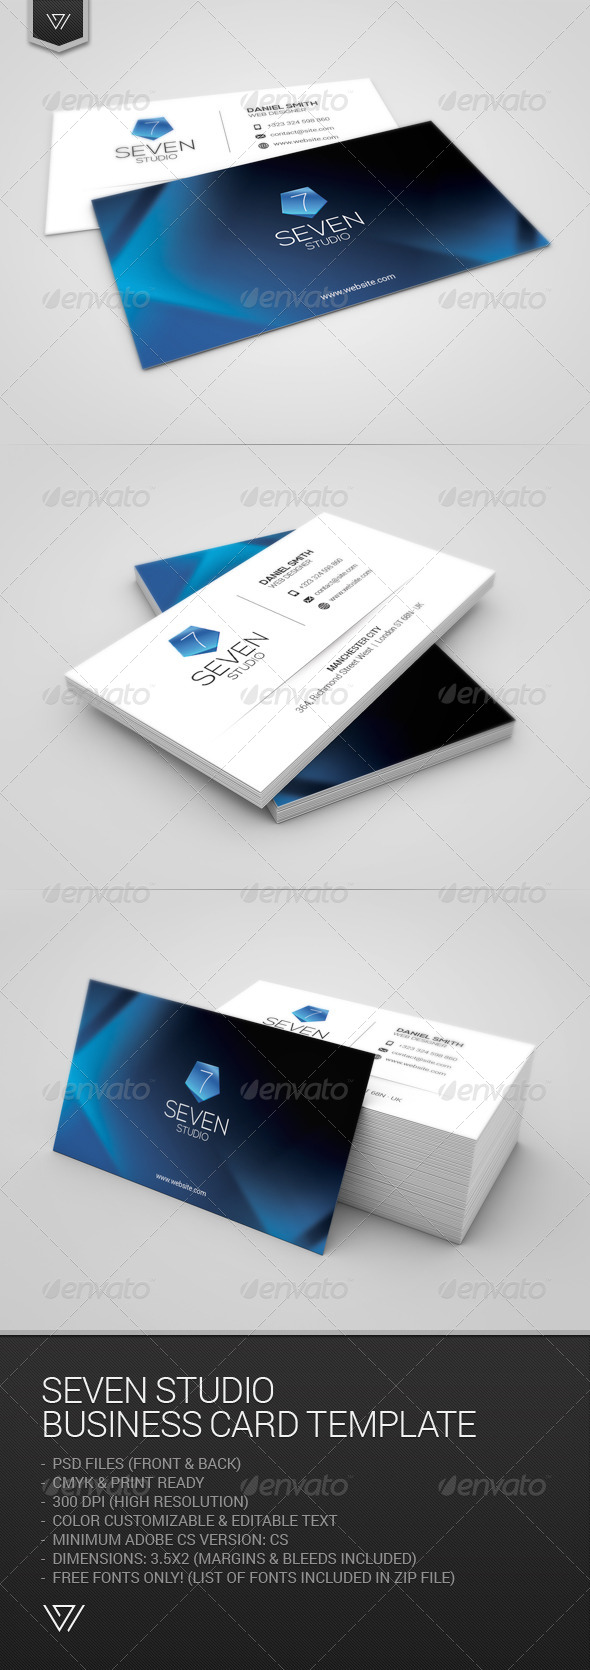 GraphicRiver Seven Studio Business Card 7702642